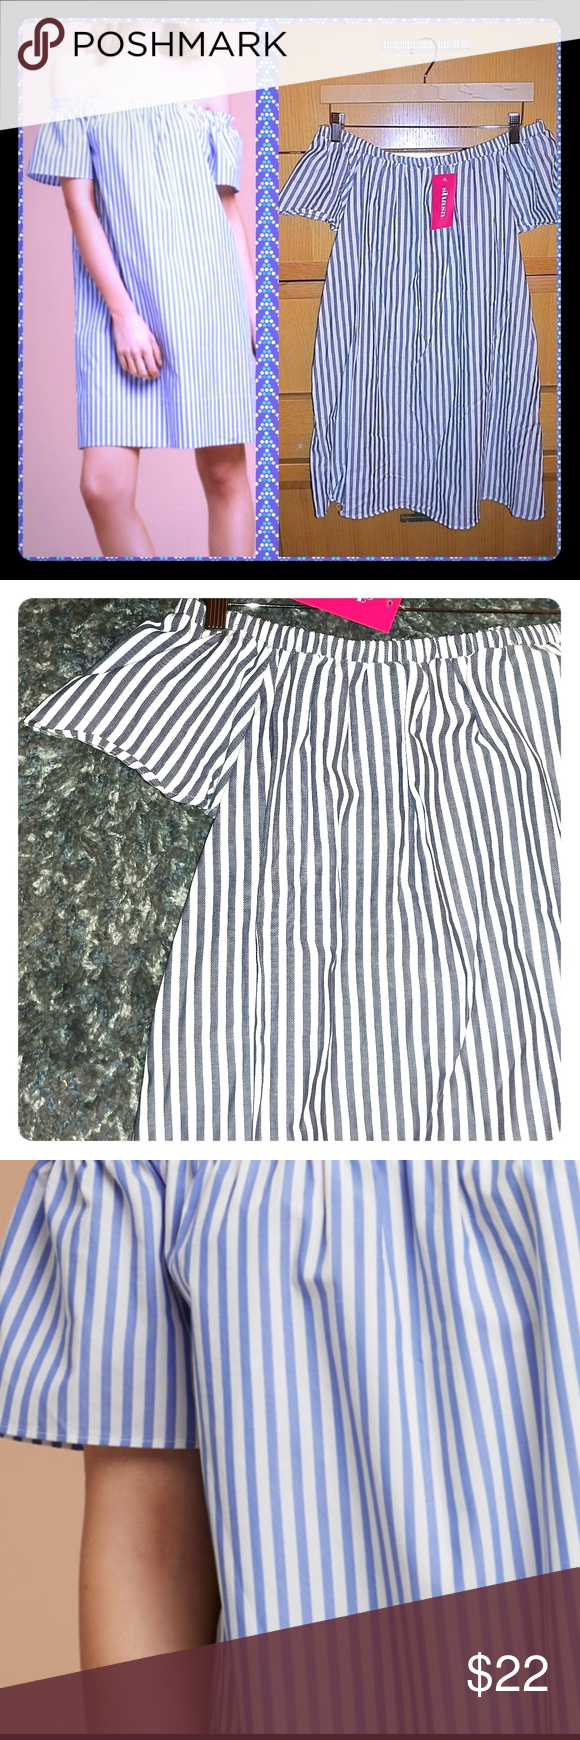 LAST CHANCE !! Off the shoulders striped dress This dress is made with an exceptionally soft cotton poplin that's lightweight and breezy. The off-the-shoulder silhouette lets you show off a little skin when the sun comes out.🌞 Content: 100% cotton  Care: Machine wash  Can be use as a dress or as a long blouse with your favorite leggings shasa Dresses Mini